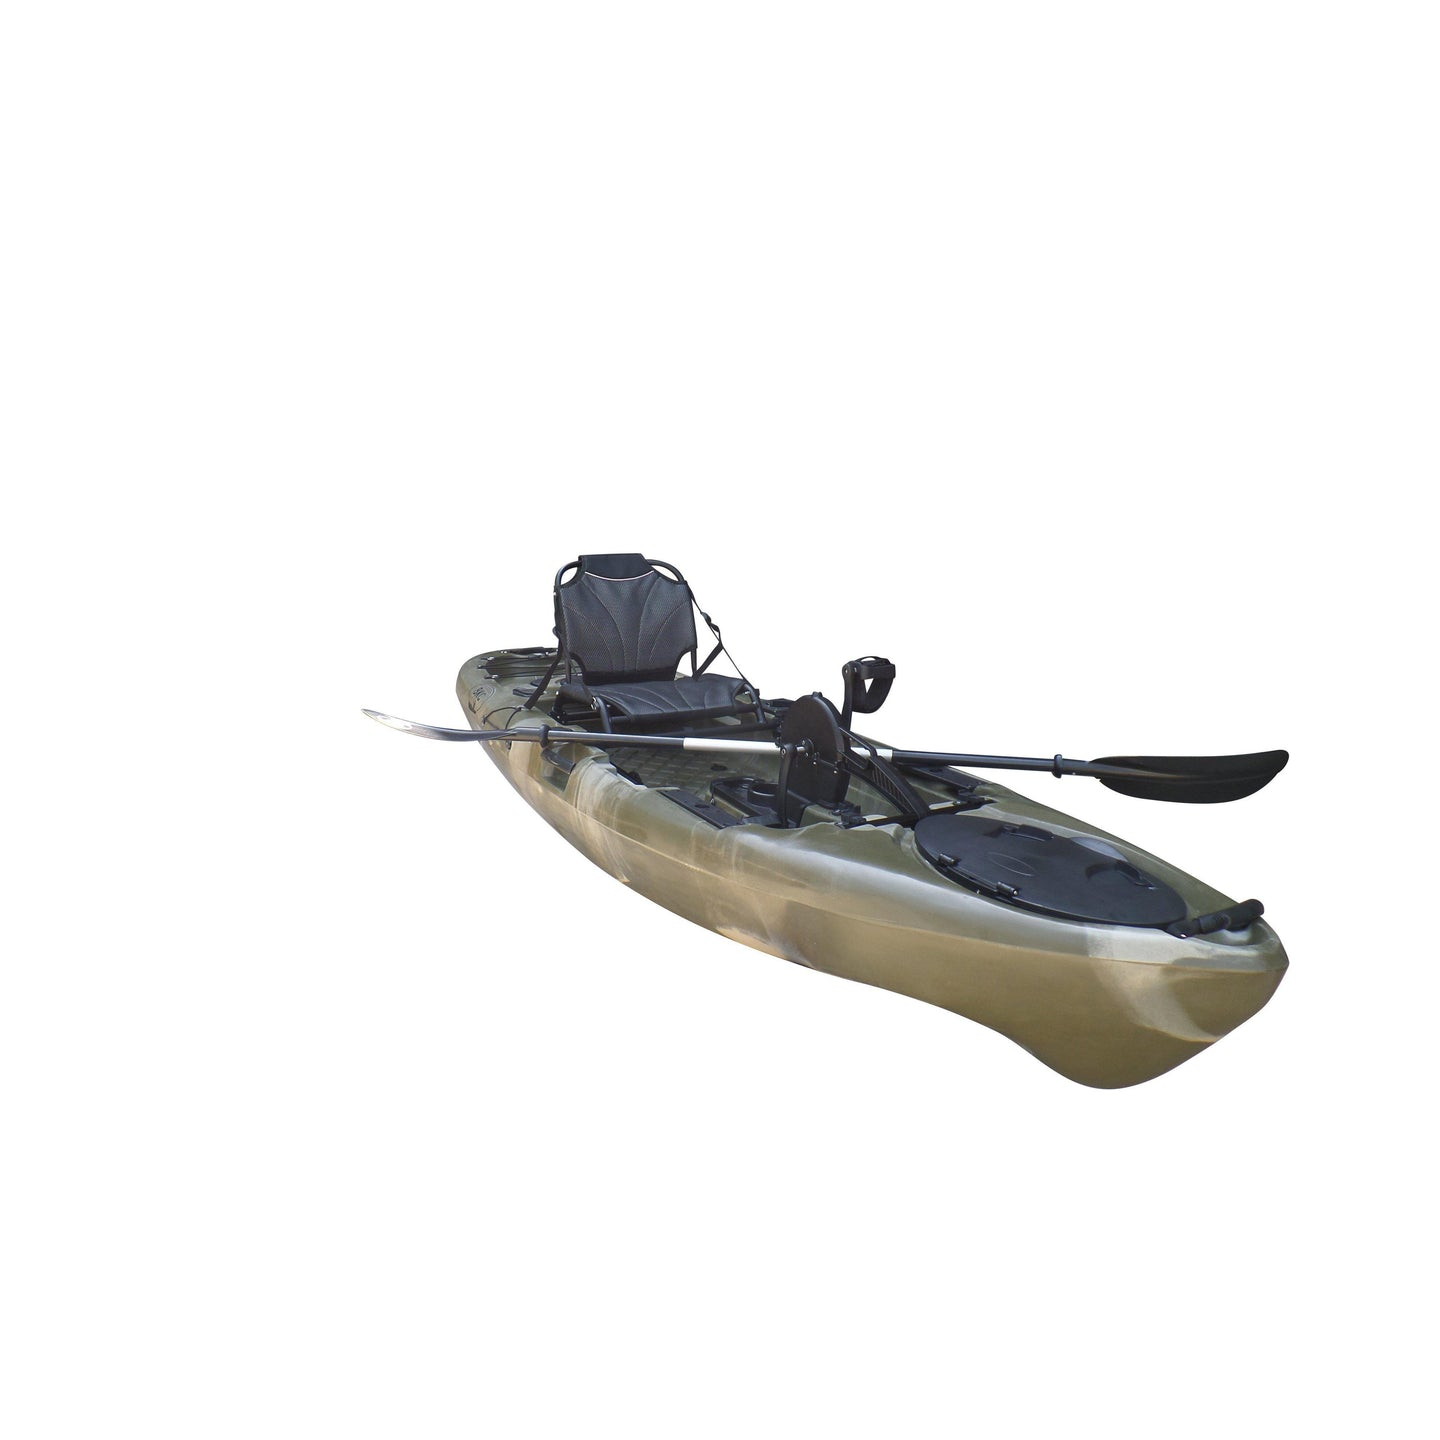 BKC UH-PK13 Pedal Drive Solo Traveler 13 Foot, With Pedal Drive, Rudder System, Paddle And Seat-Kayak Shops